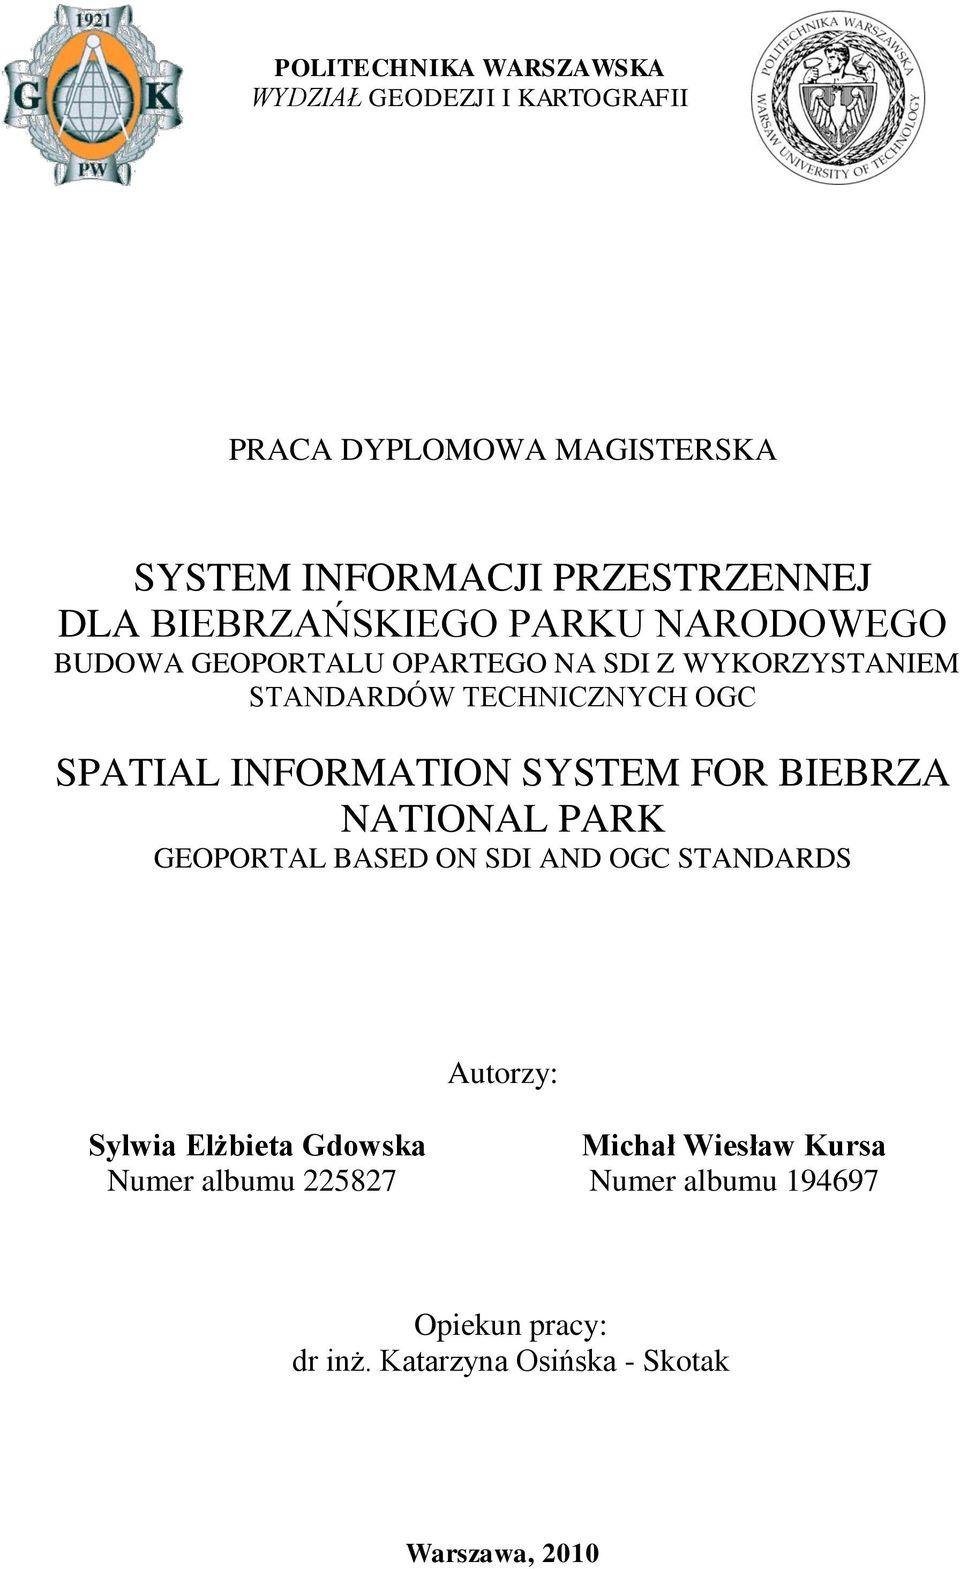 INFORMATION SYSTEM FOR BIEBRZA NATIONAL PARK GEOPORTAL BASED ON SDI AND OGC STANDARDS Autorzy: Sylwia Elżbieta Gdowska